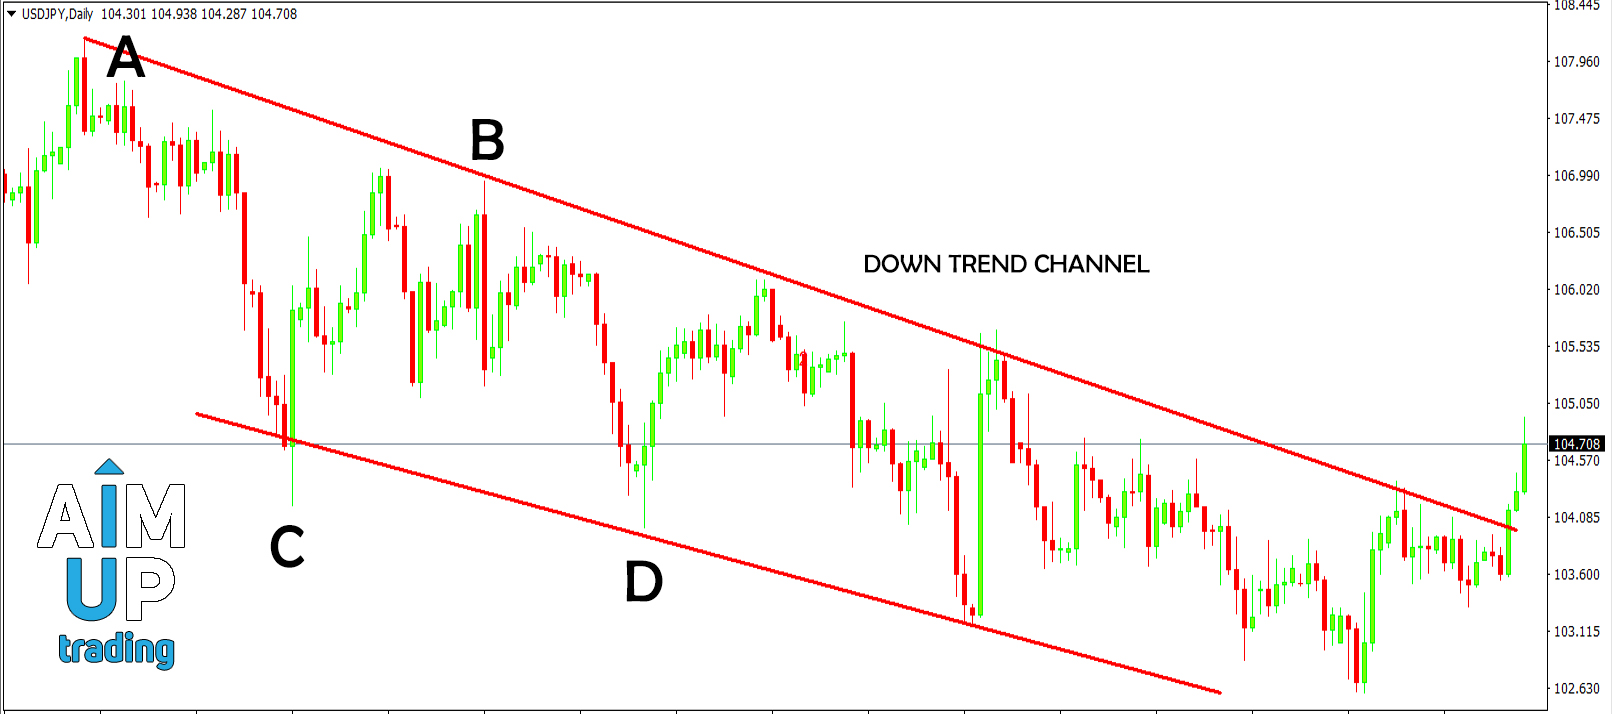 HOW TO TRADE DOWN TREND CHANNEL DETAILS